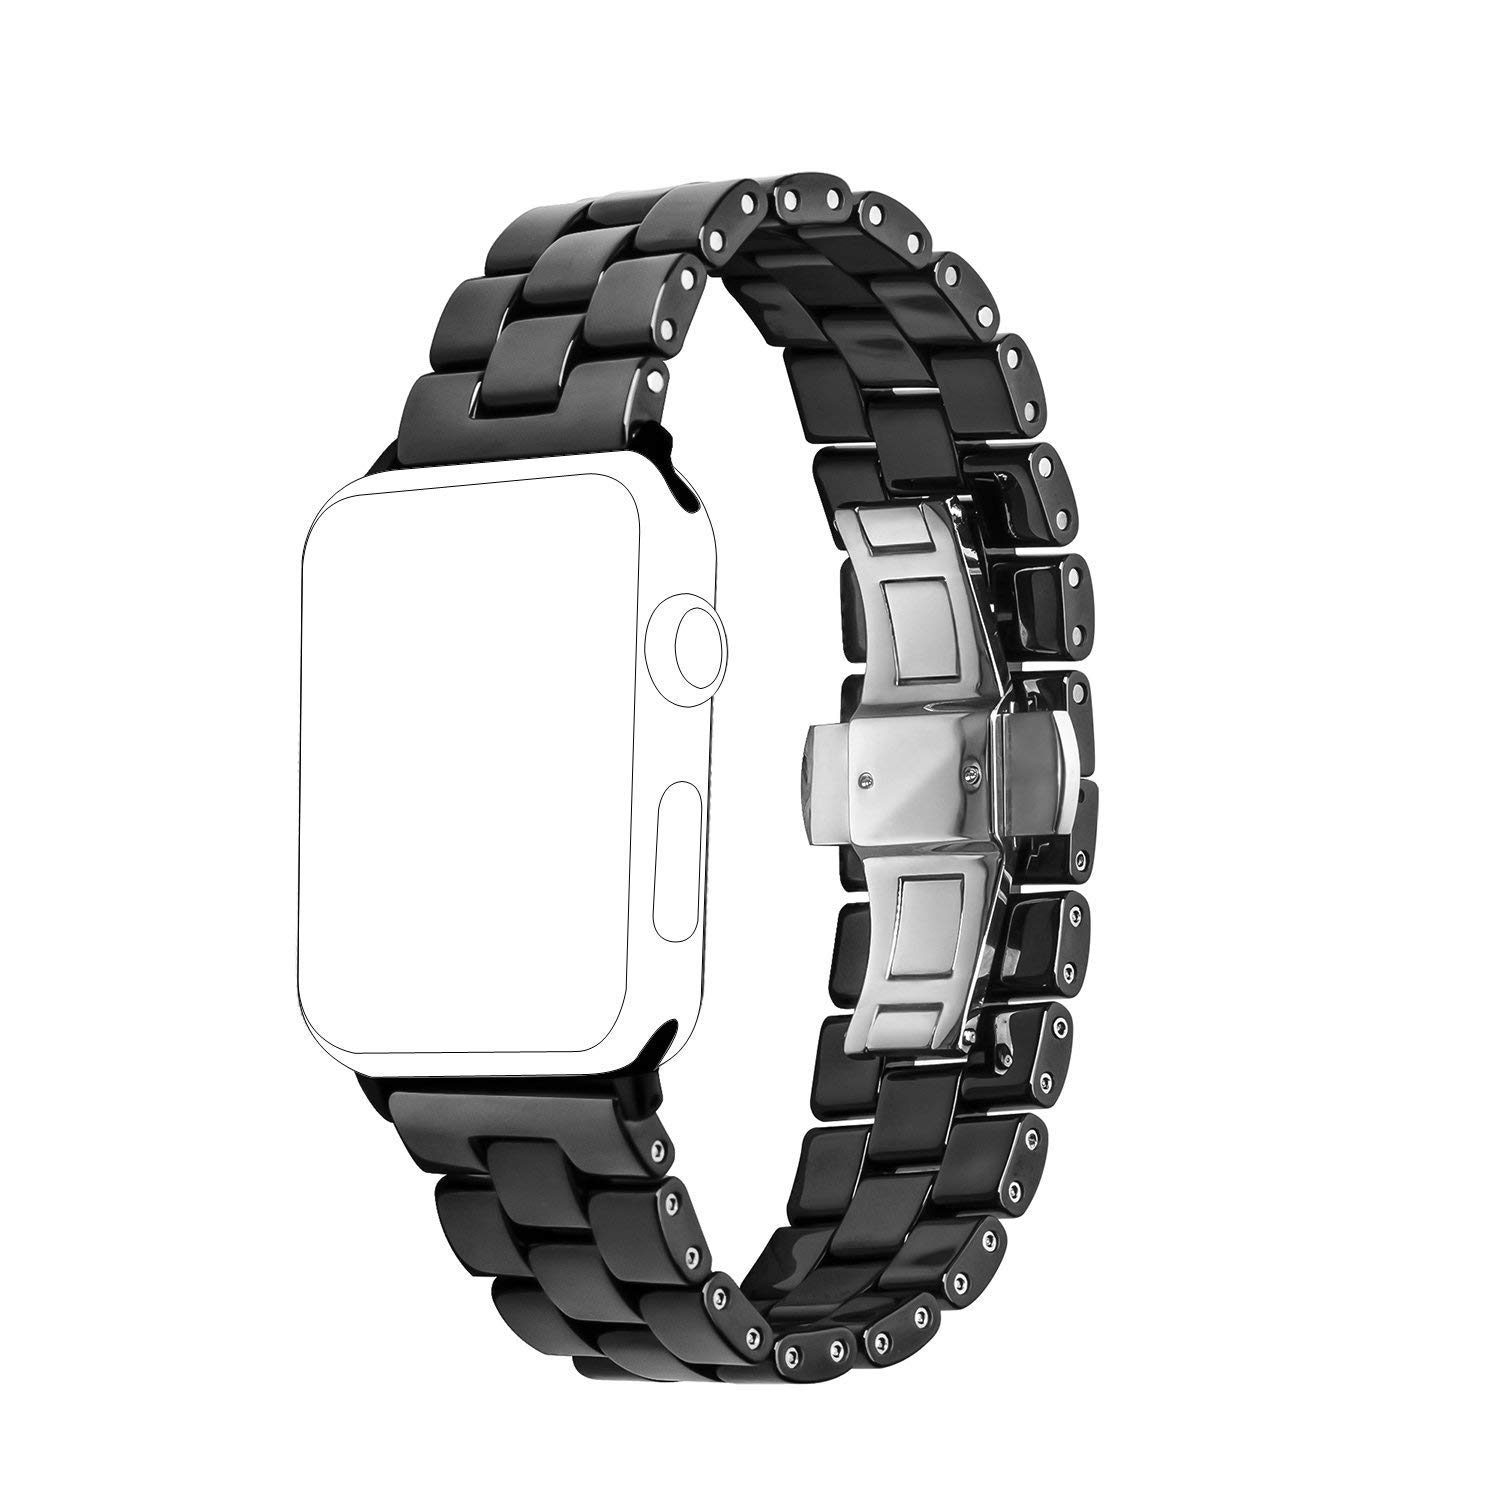 Ceramic Band Strap Fashionable Smartwatch Wristband Bracelet Compatible with 40mm Apple Watch Series 4, 38mm Apple Watch Series 3/2/1 (Black,Style 2)